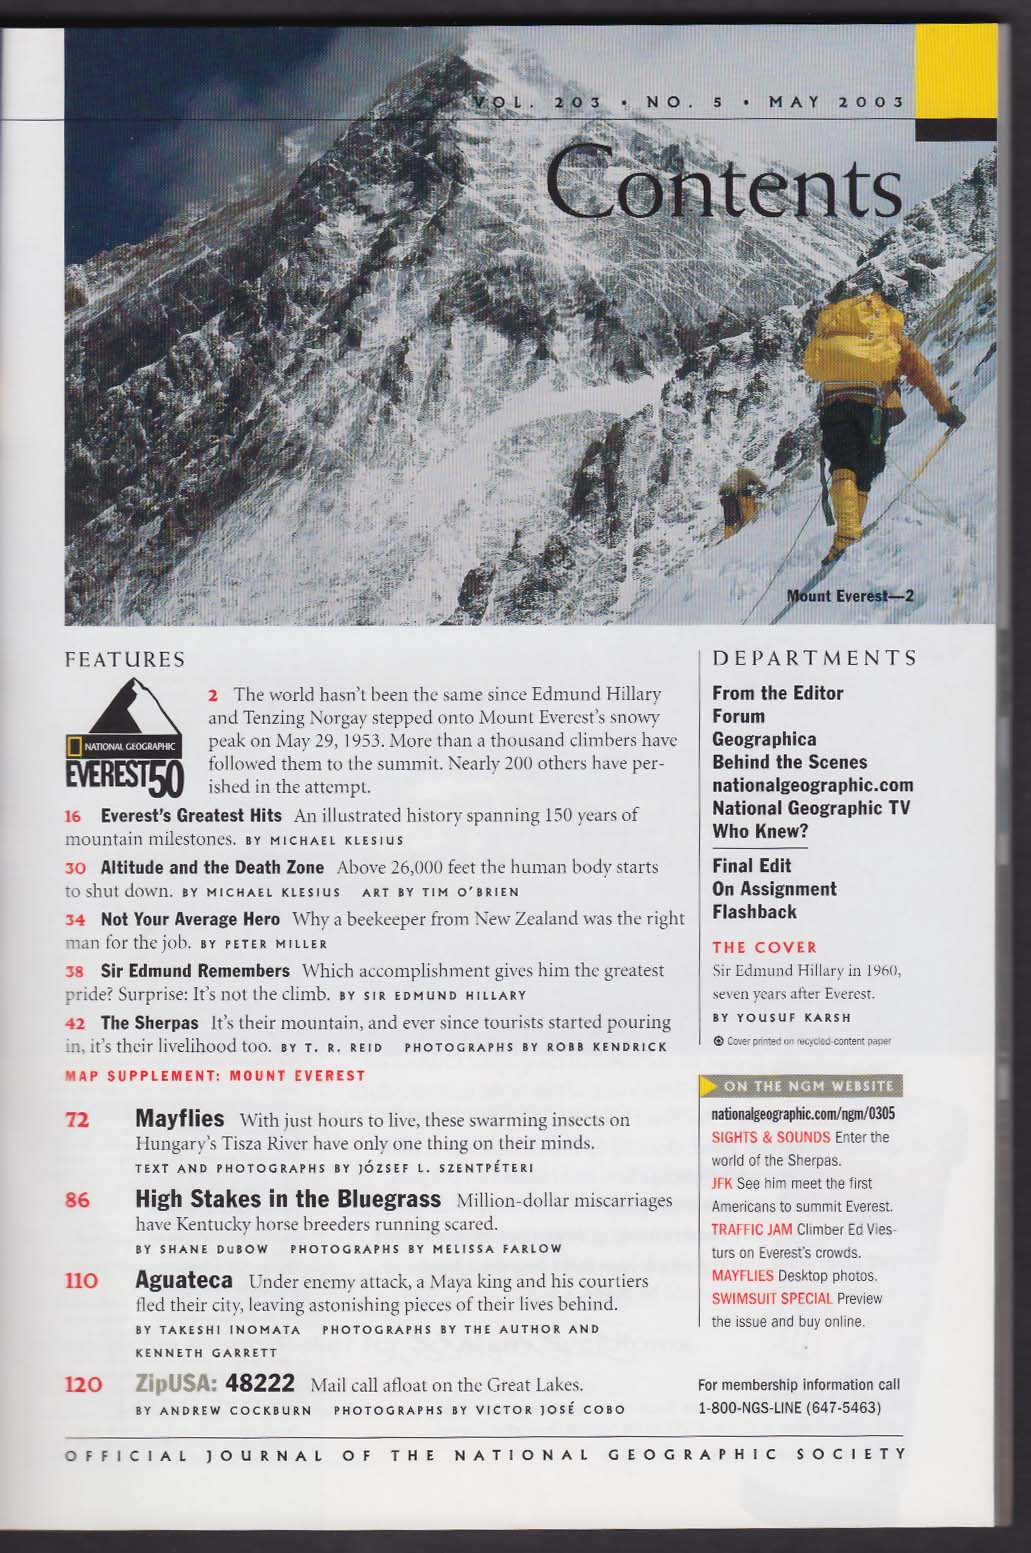 NATIONAL GEOGRAPHIC Sir Edmund Hillary Mount Everest 5 2003